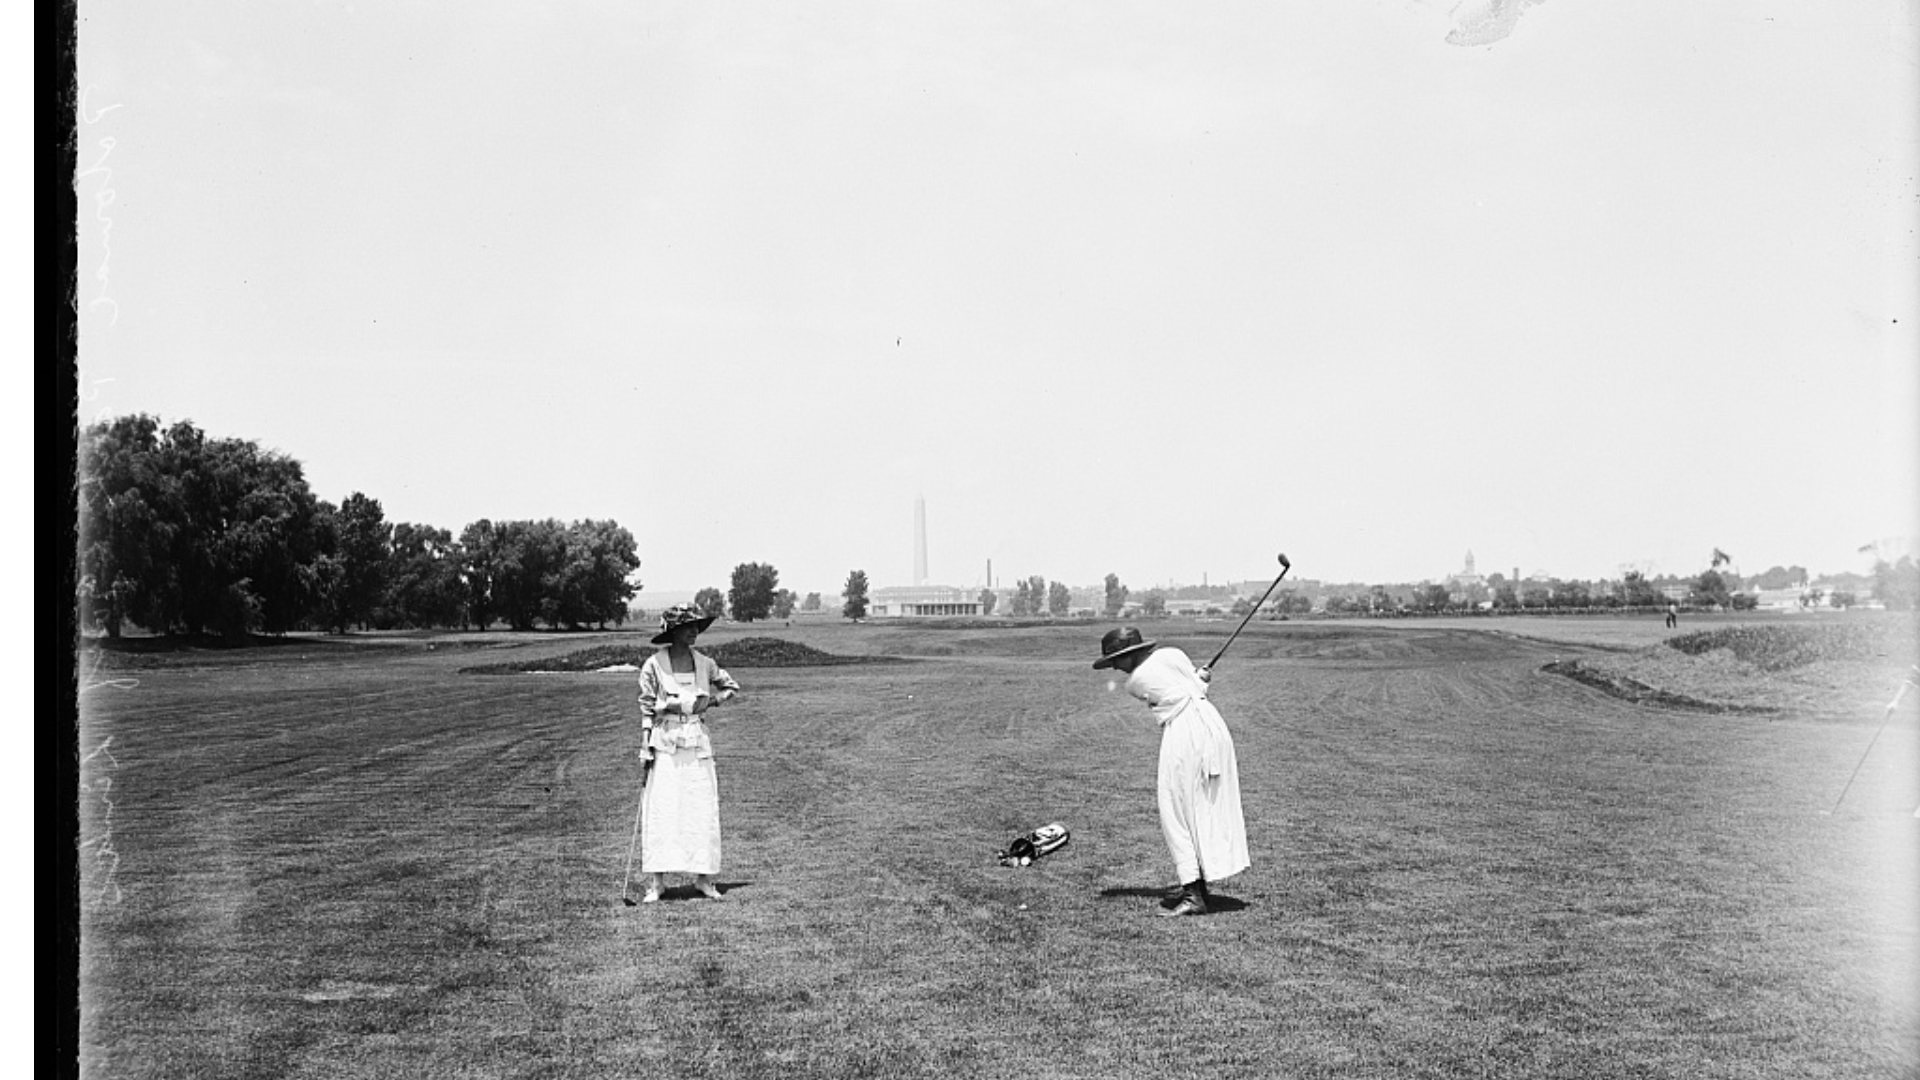 - These golf courses all have unique and compelling histories that will be celebrated, and all deserve a sensitive restoration that returns them to what they once set out to be - shining examples of engaging golf course architecture coupled with easy and affordable access —-- what municipal golf can and should be.